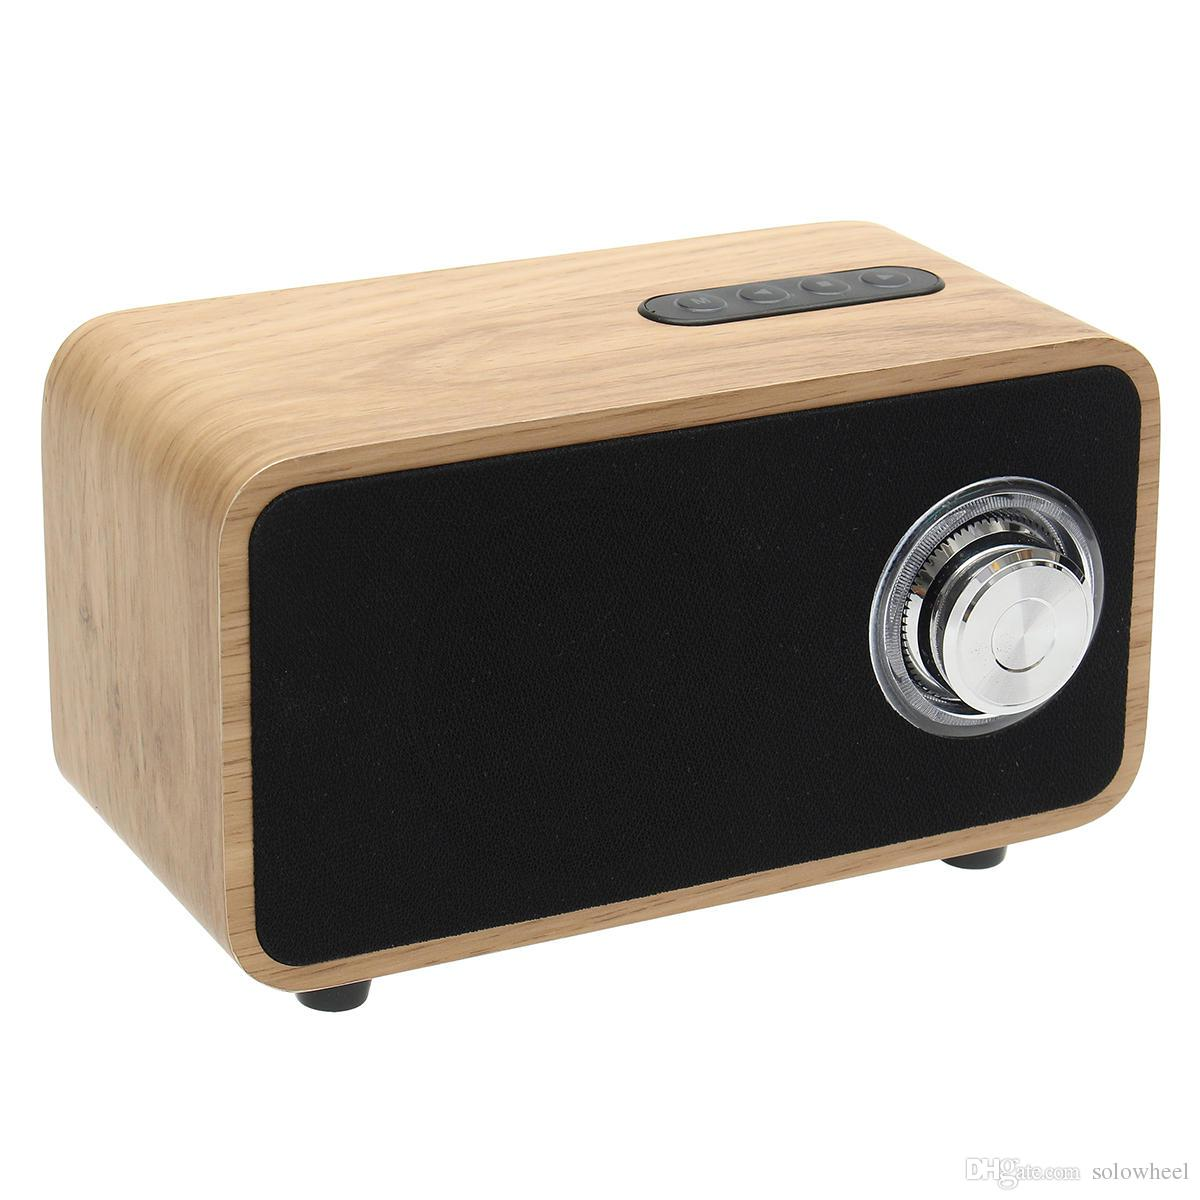 Larger capacity 2200mAh DC 5V Digital Multimedia Speaker Bluetooth MP3 FM Radio Wooden Brown wireless hifi subwoofers for computer/TV